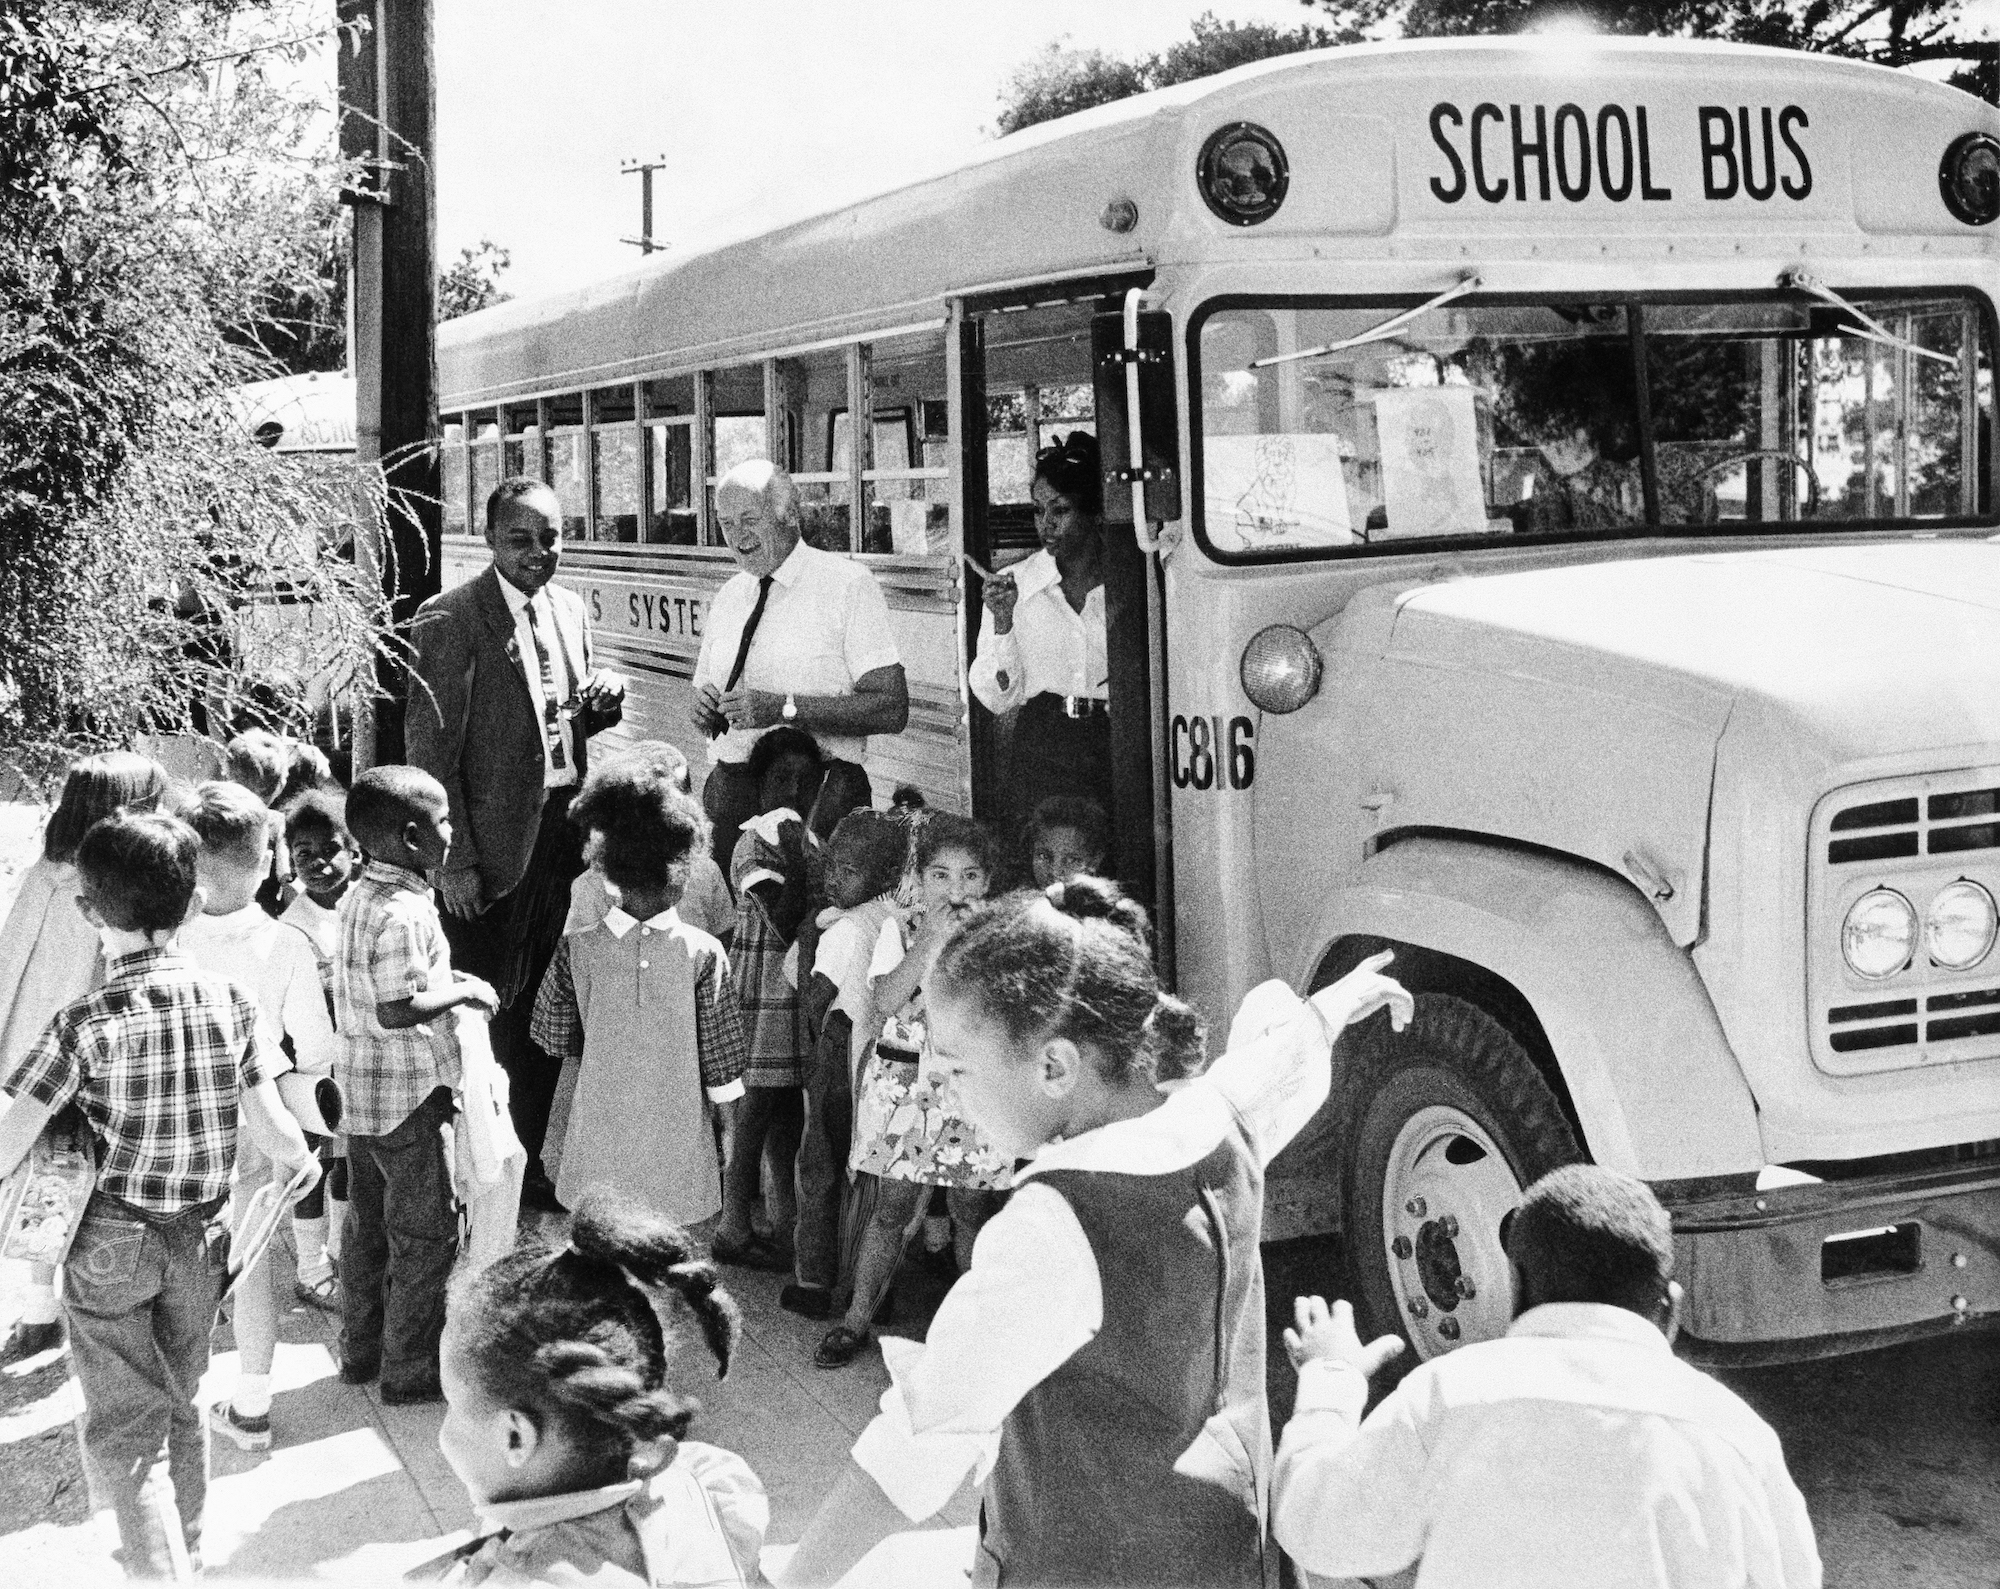 A black and white photo of Black children heading for a school bus while adults supervise